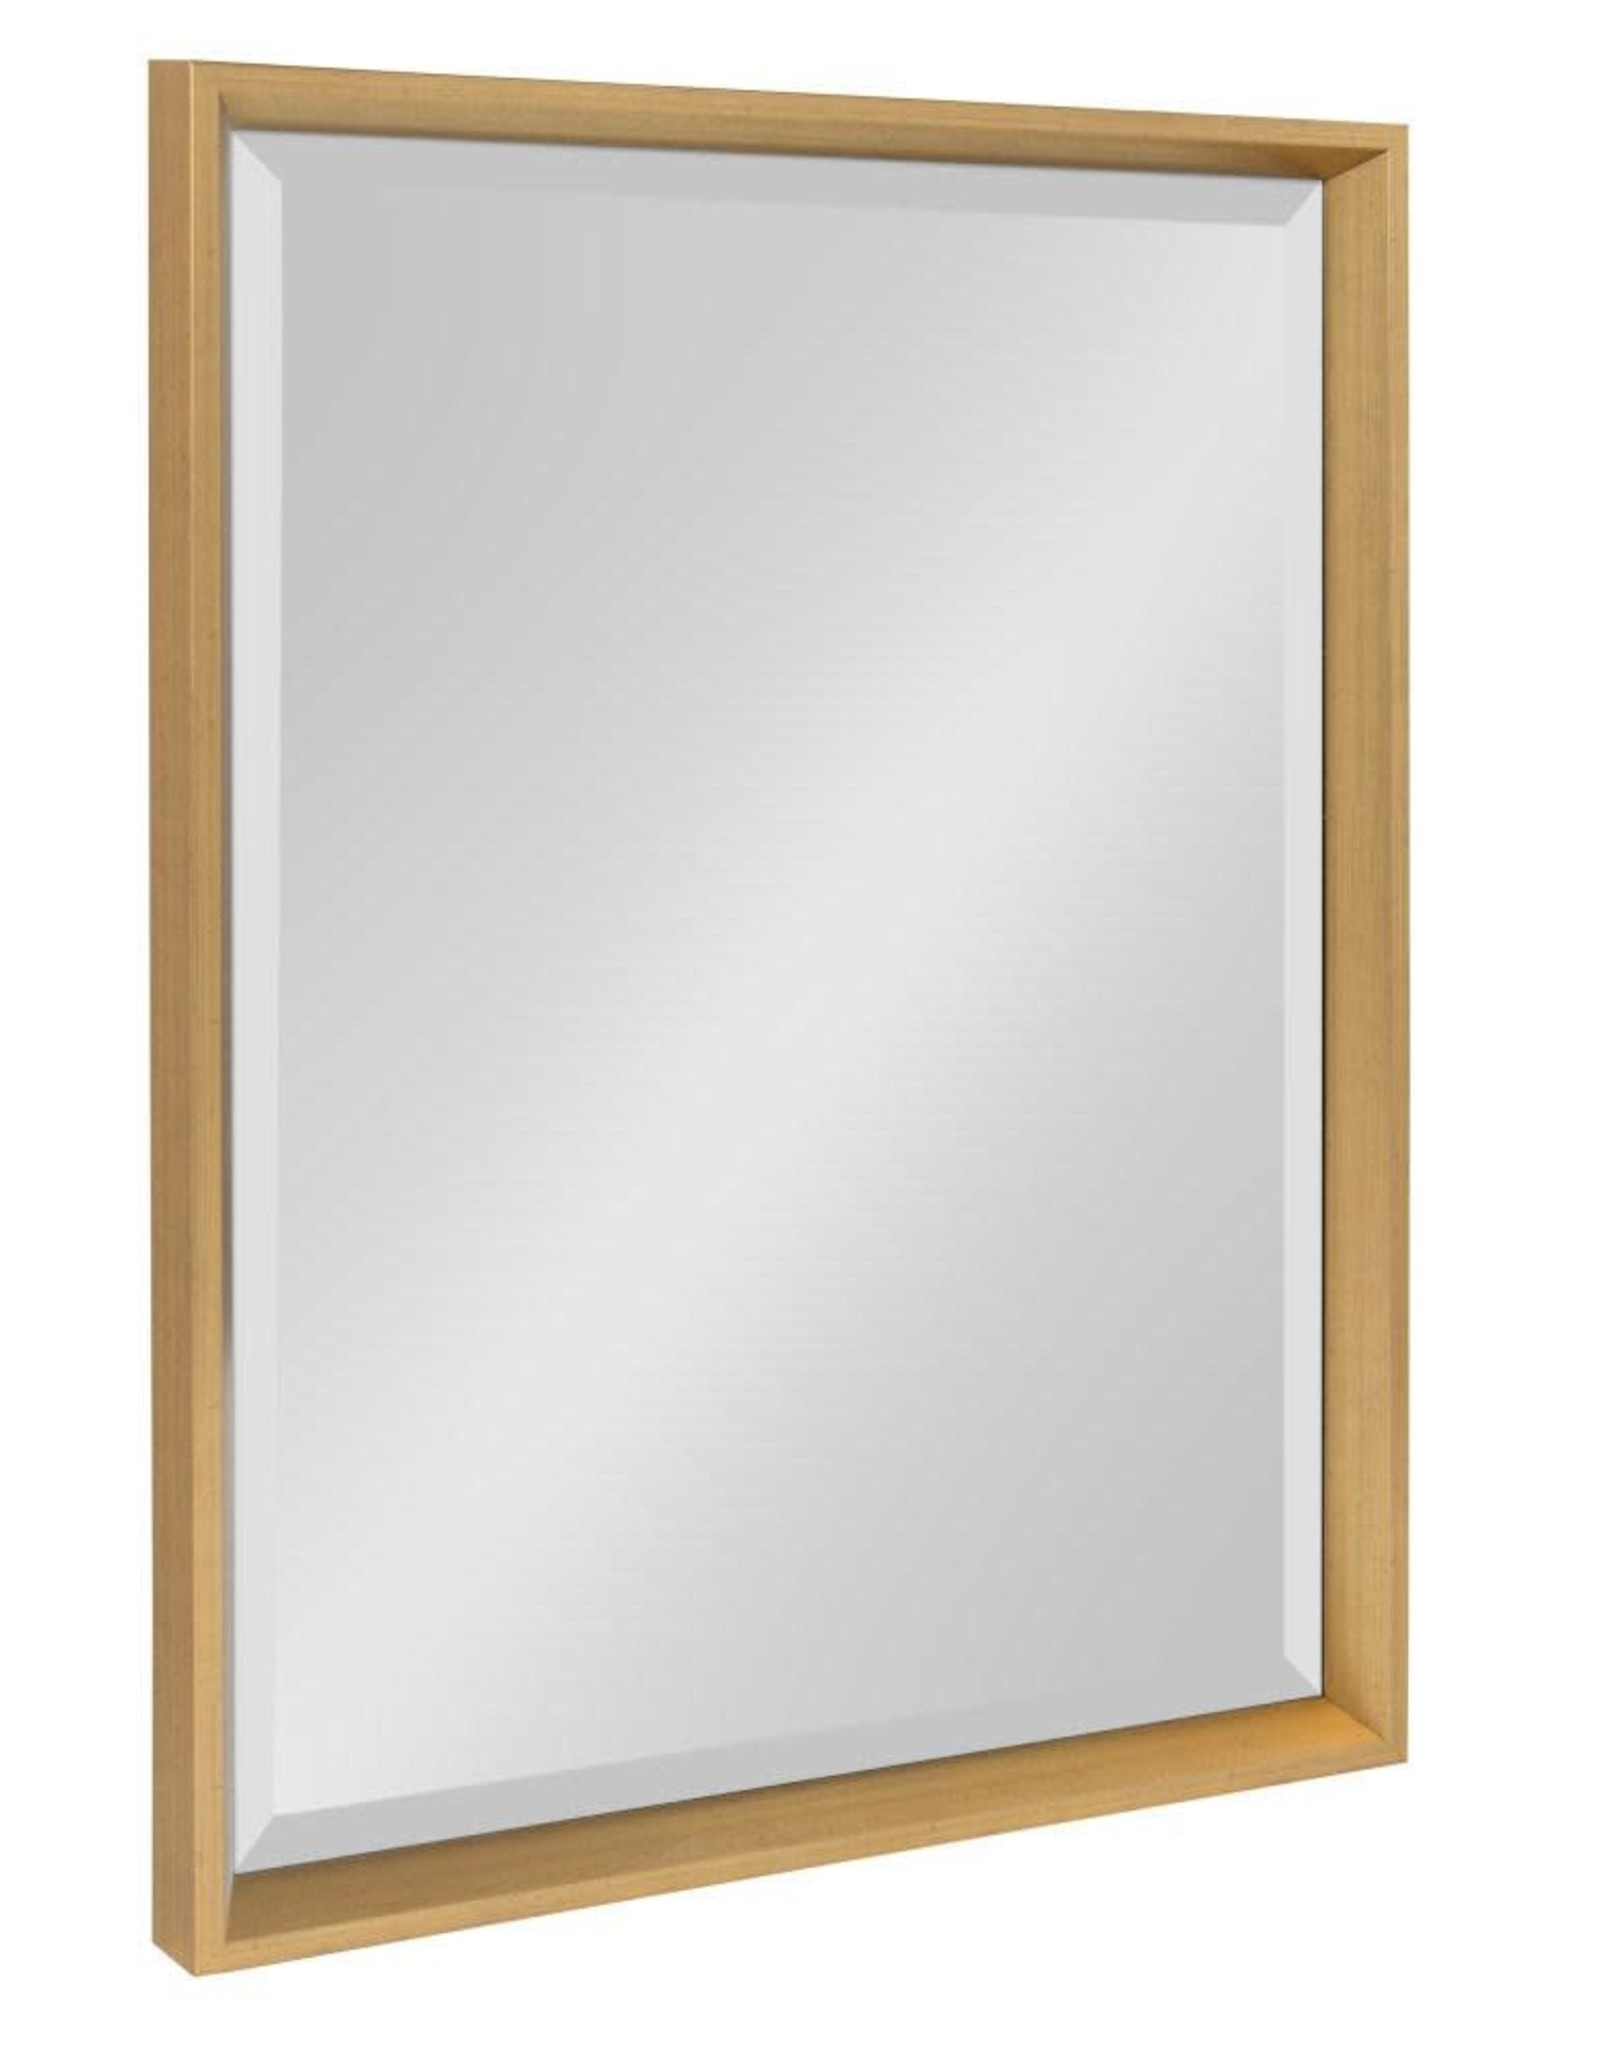 Kate and Laurel Calter 17.5 in. W x 23.5 in. H Framed Rectangular Beveled Edge Bathroom Vanity Mirror in Gold